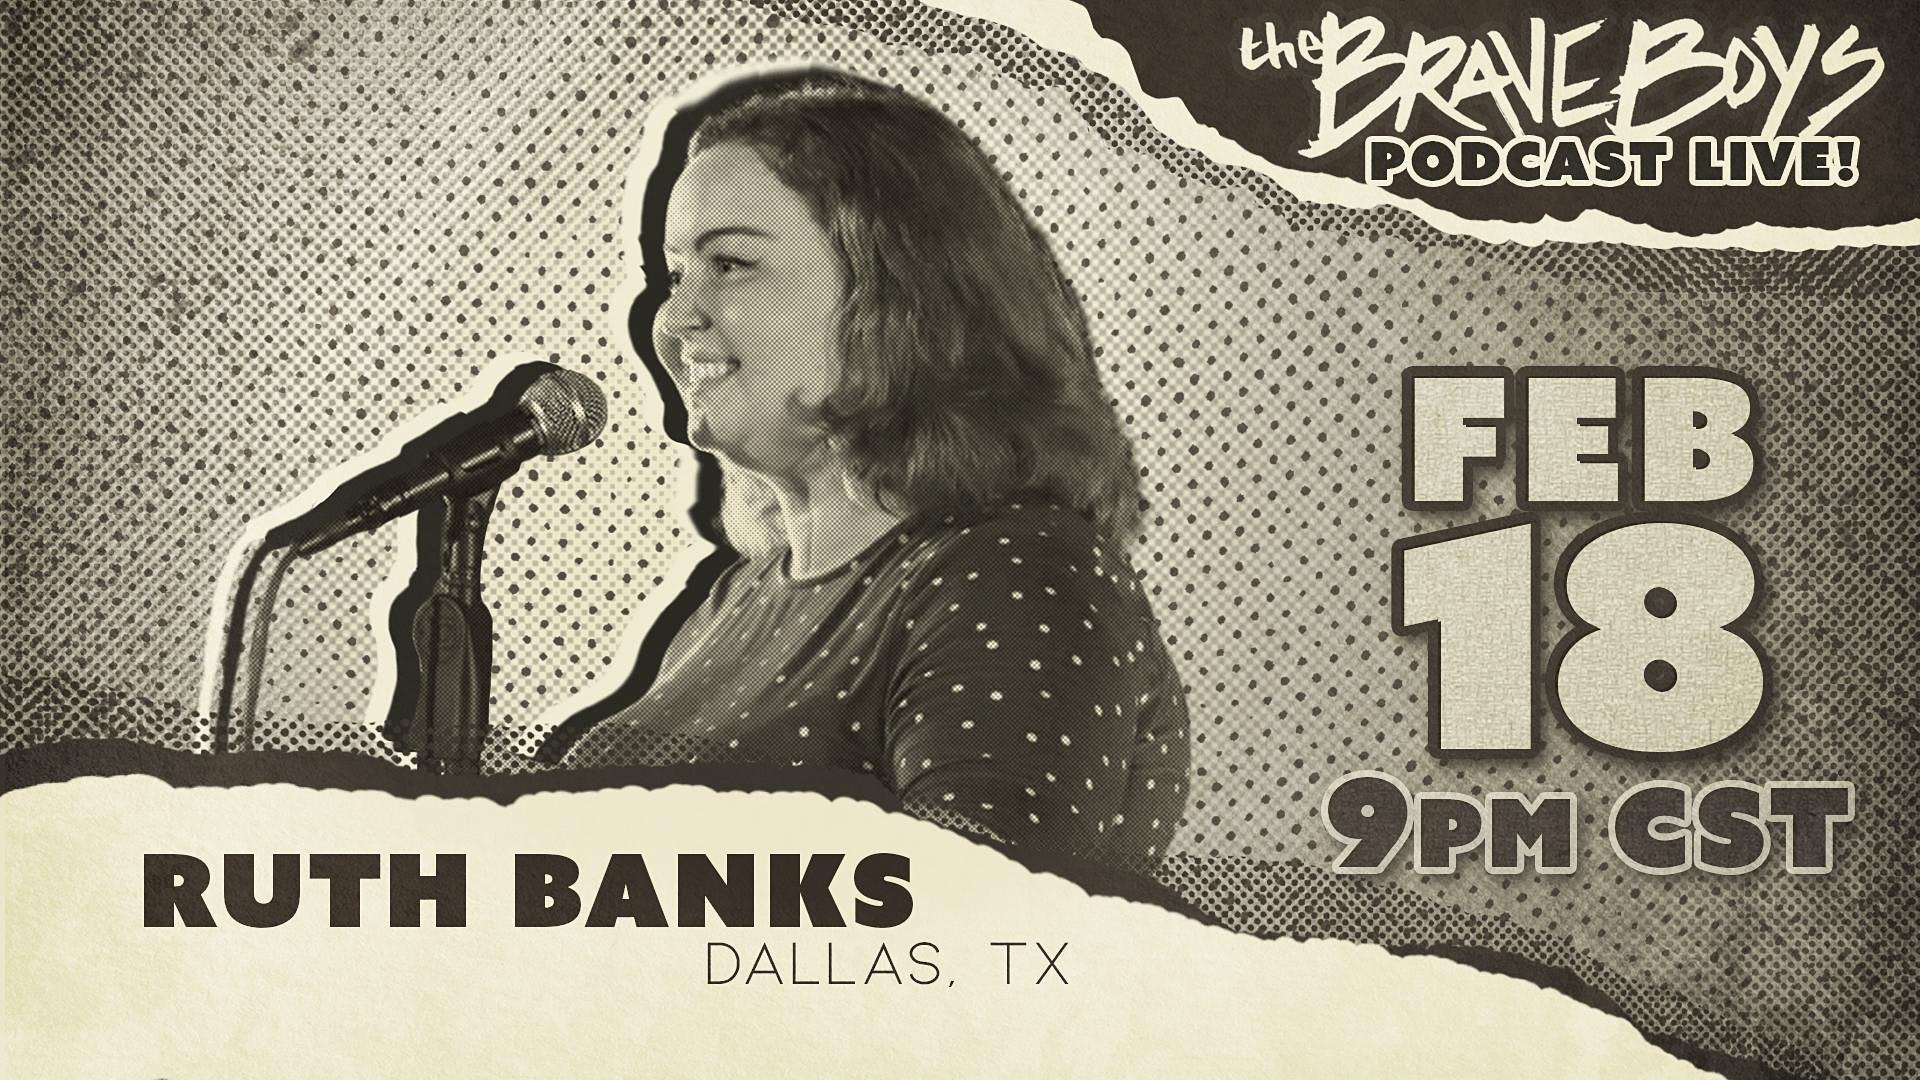 Brave Boys Comedy Podcast Live! feat. Ruth Banks